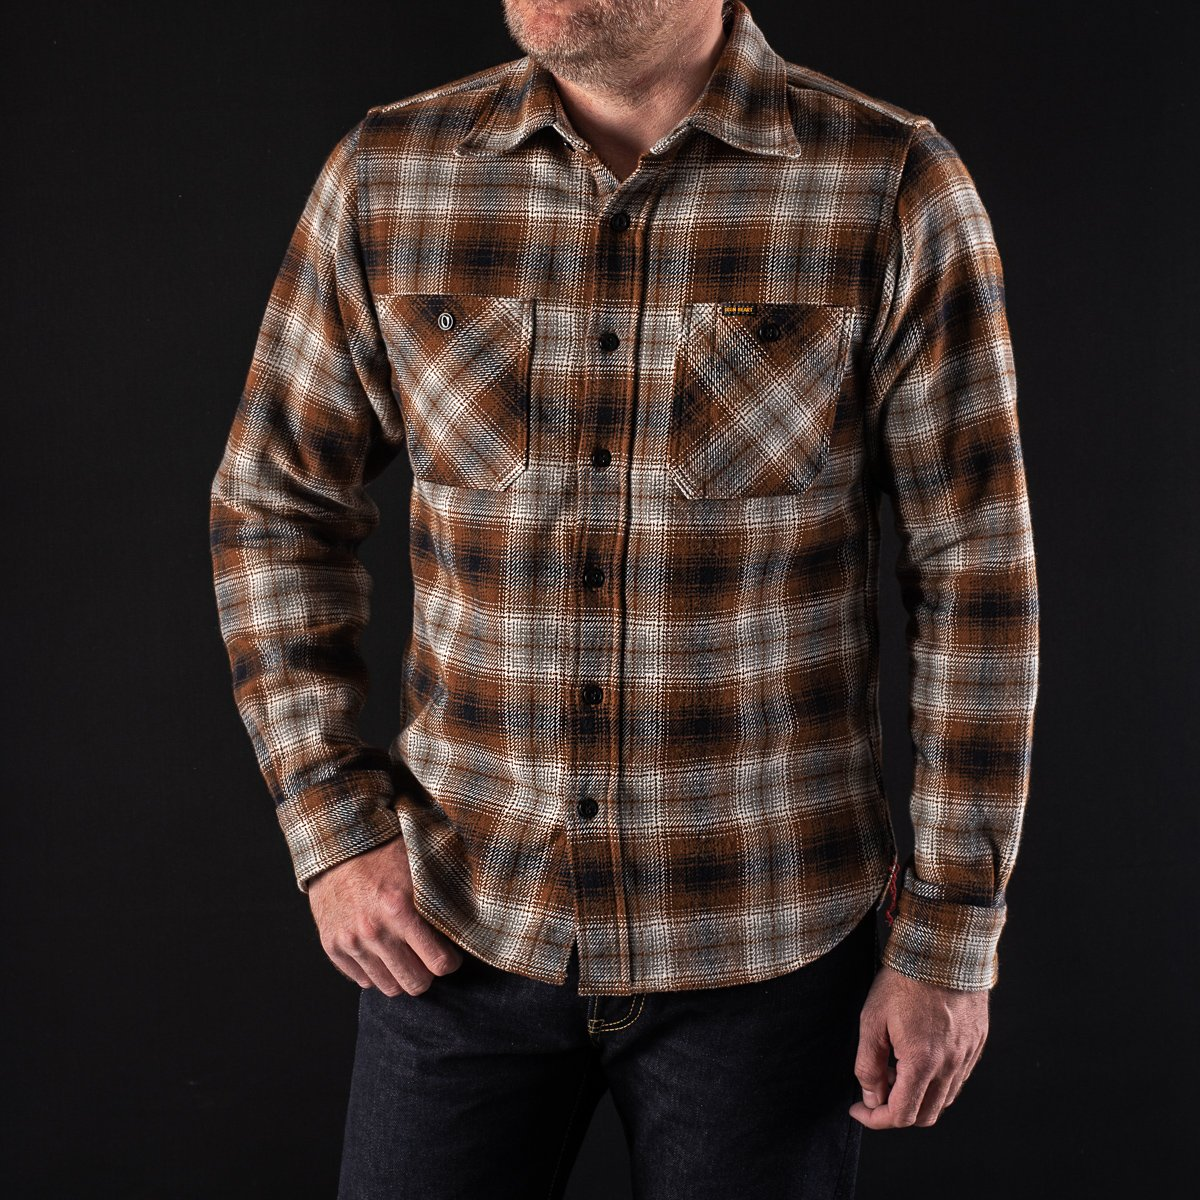 7dafed34476 ... Brown Ultra Heavy Flannel Classic Check Work Shirt ...